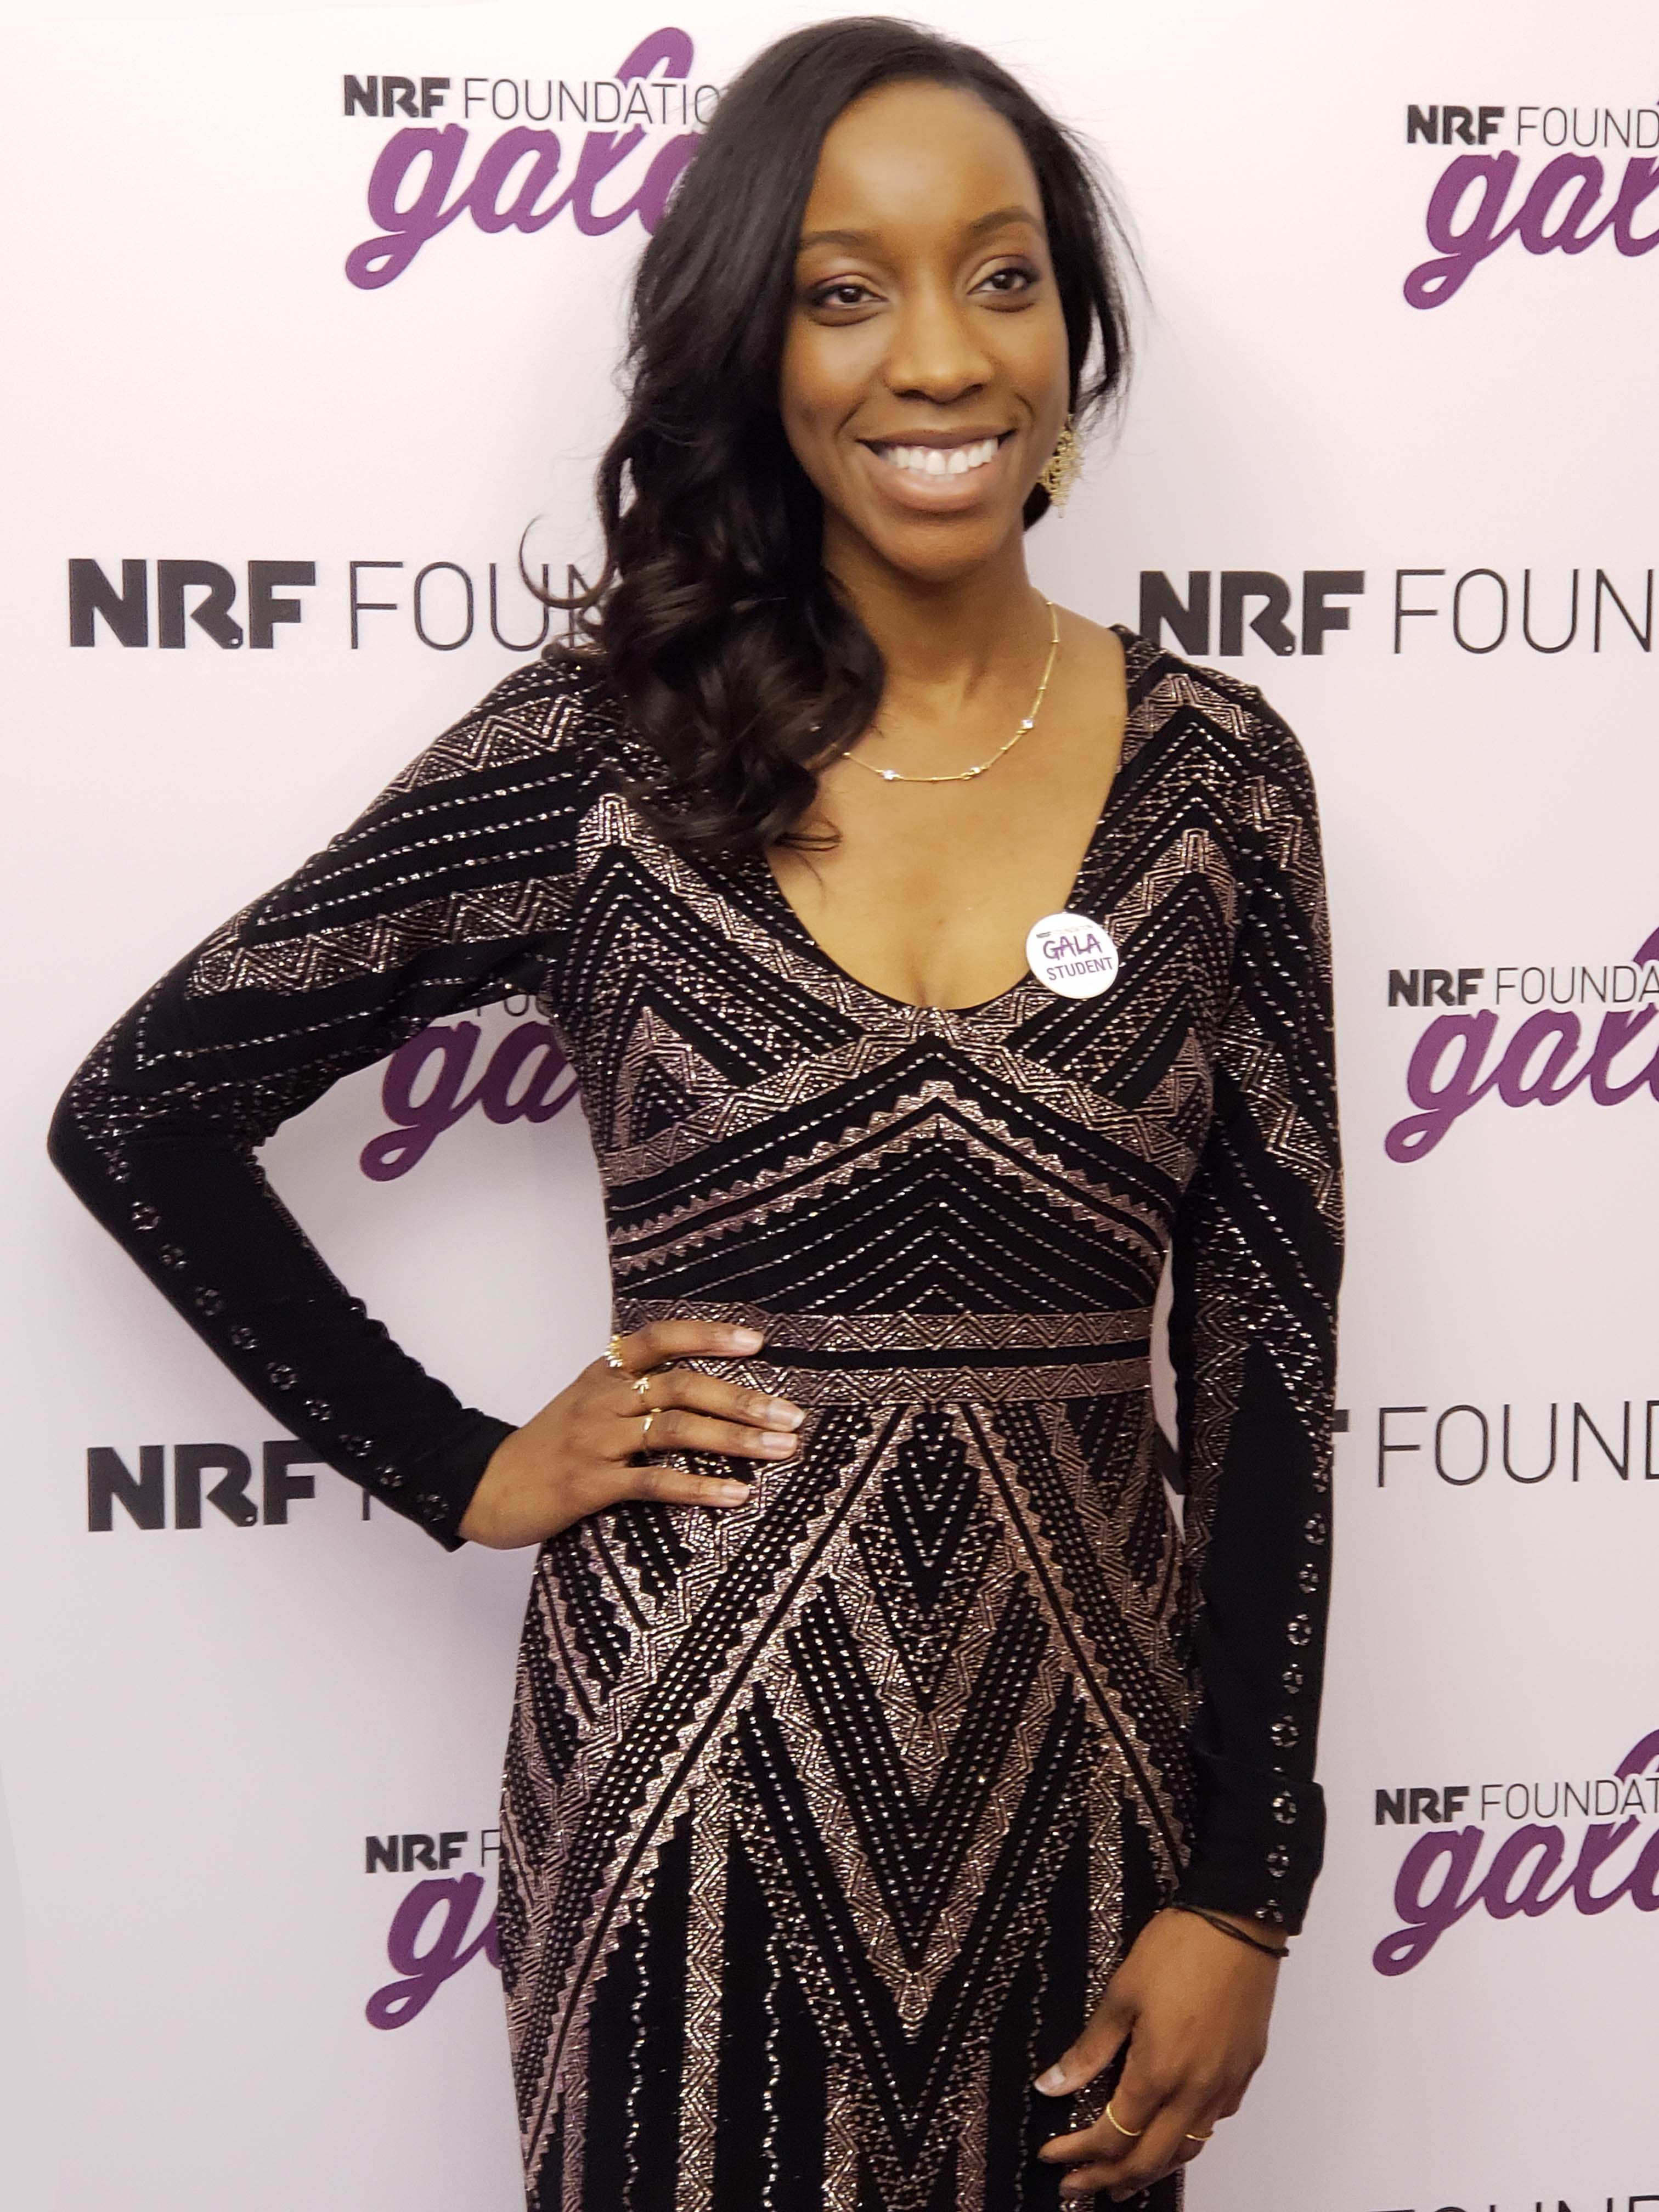 Lauren-Ashley Solomon posing at the NRF Foundation Gala.